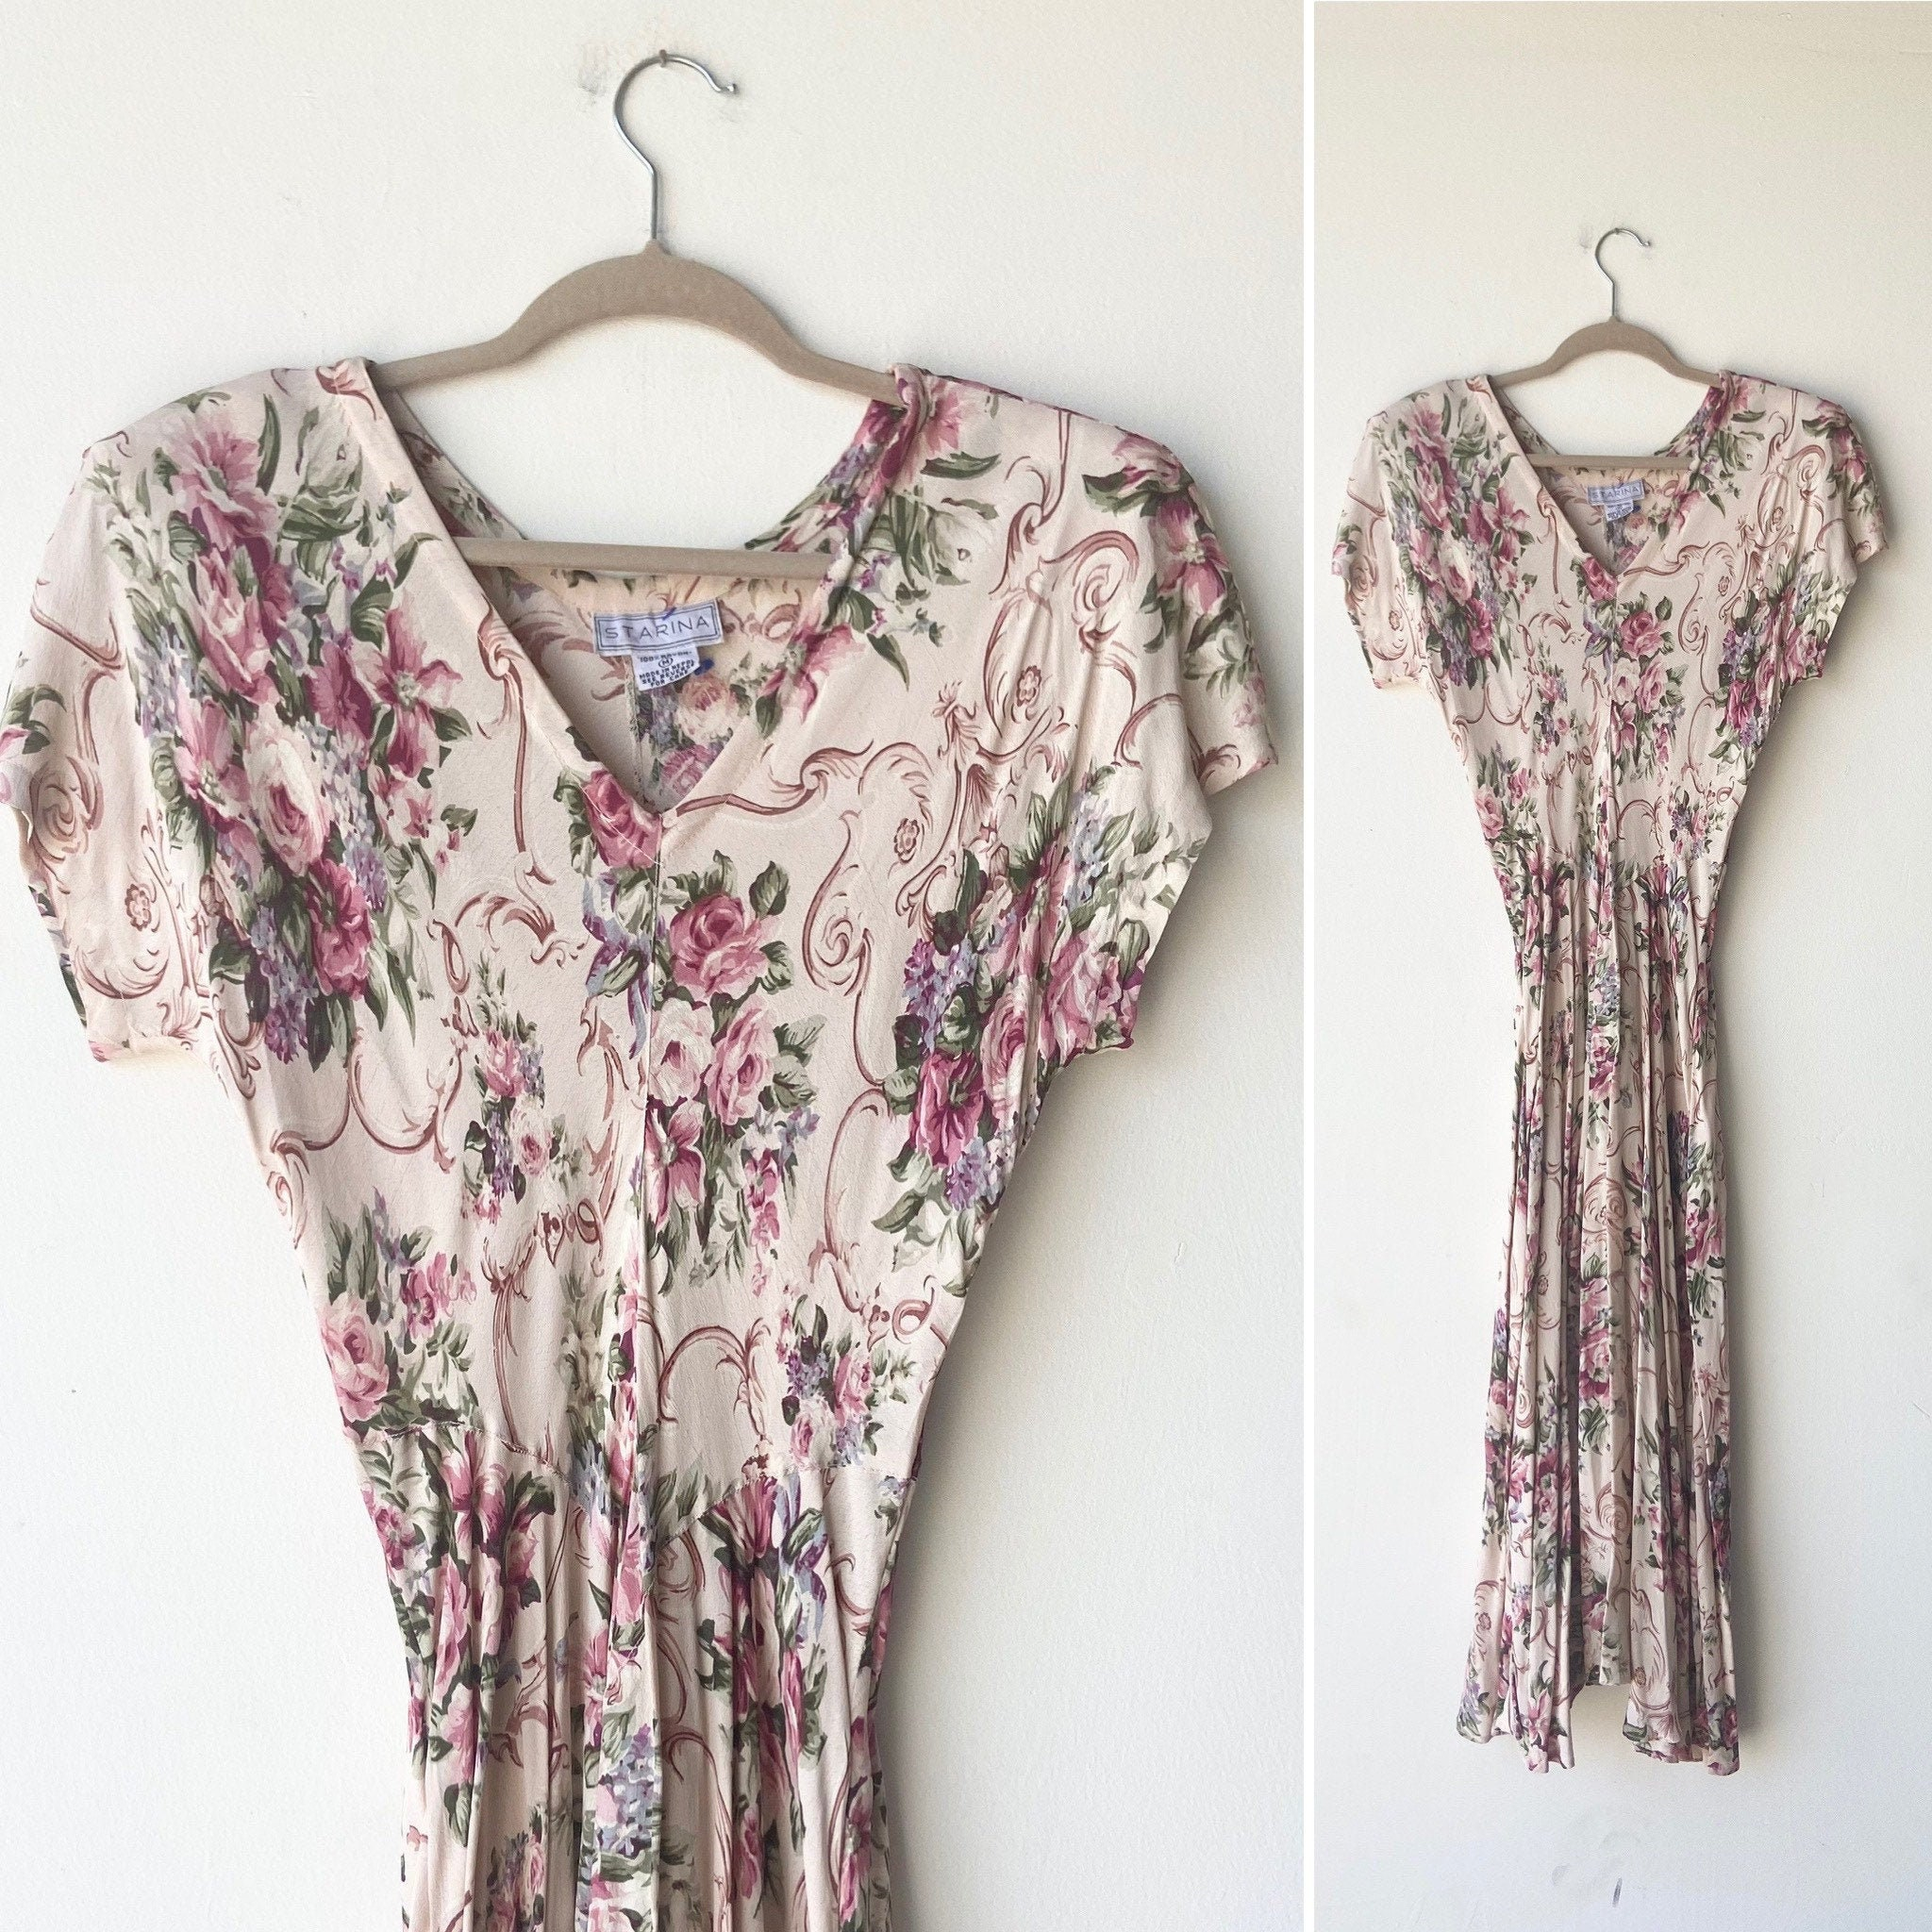 80s Dresses | Casual to Party Dresses 80S Floral Rayon Dress  Made in India Medium $30.00 AT vintagedancer.com